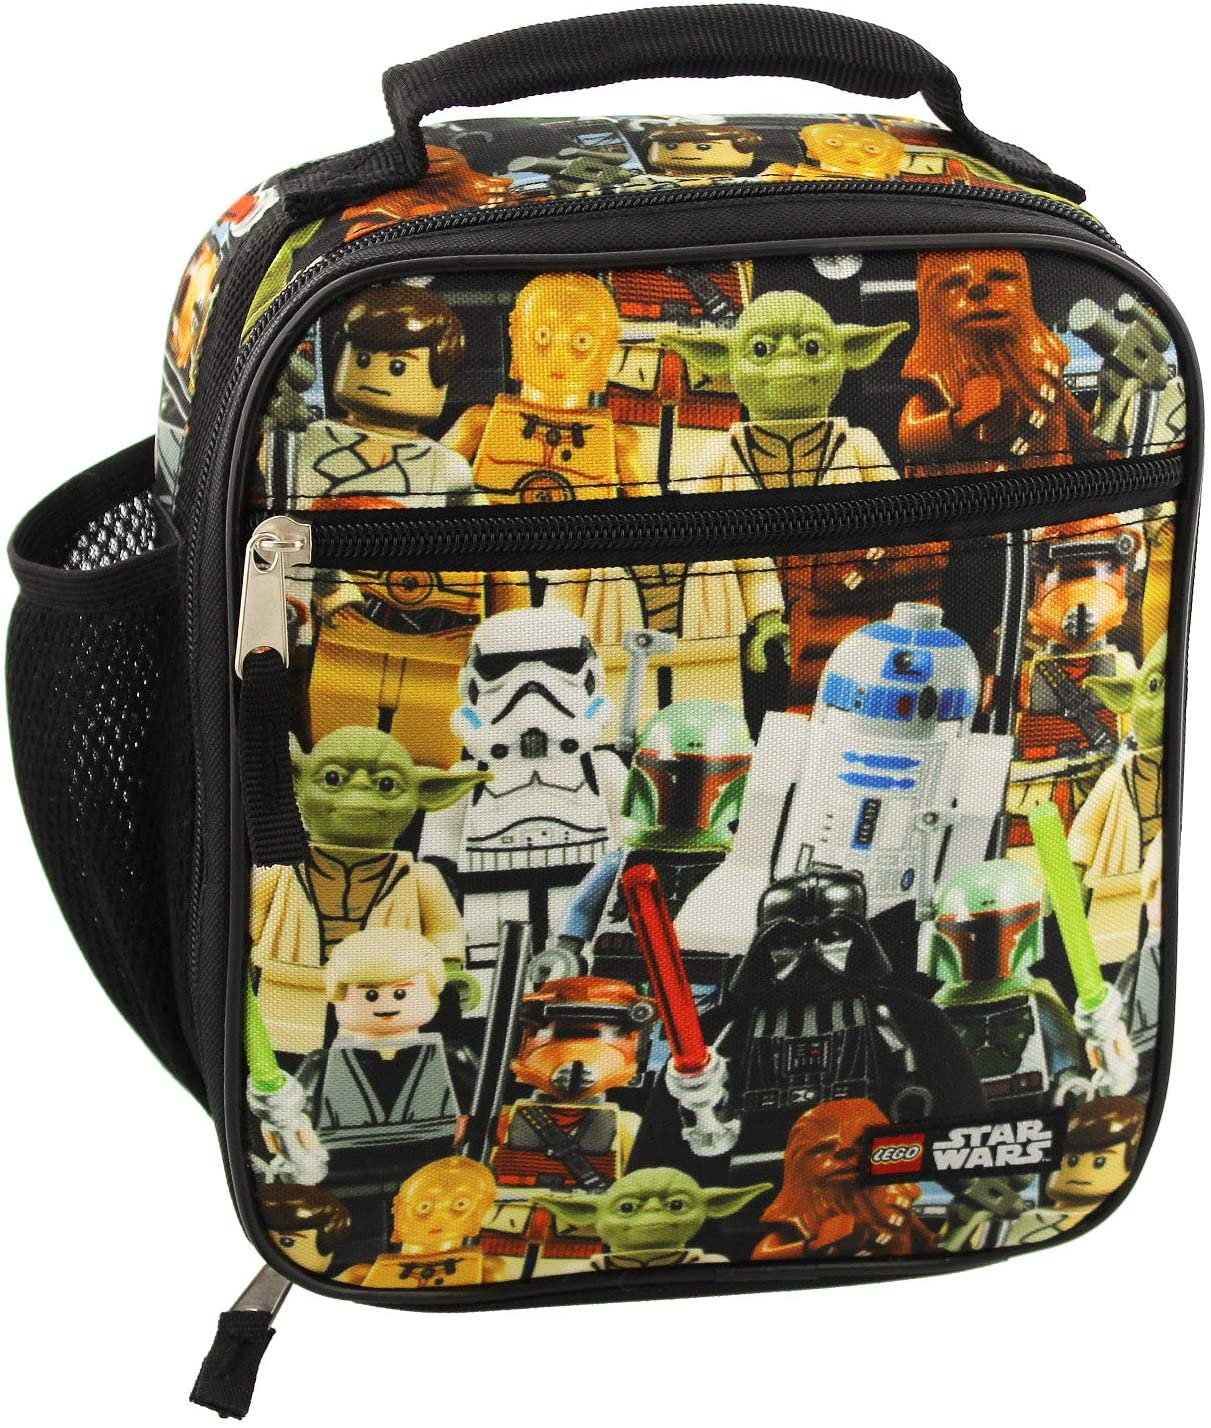 Lego Star Wars Boy\'s Girl\'s Adult Soft Insulated School Lunch Box (One Size, Lego Star Wars)